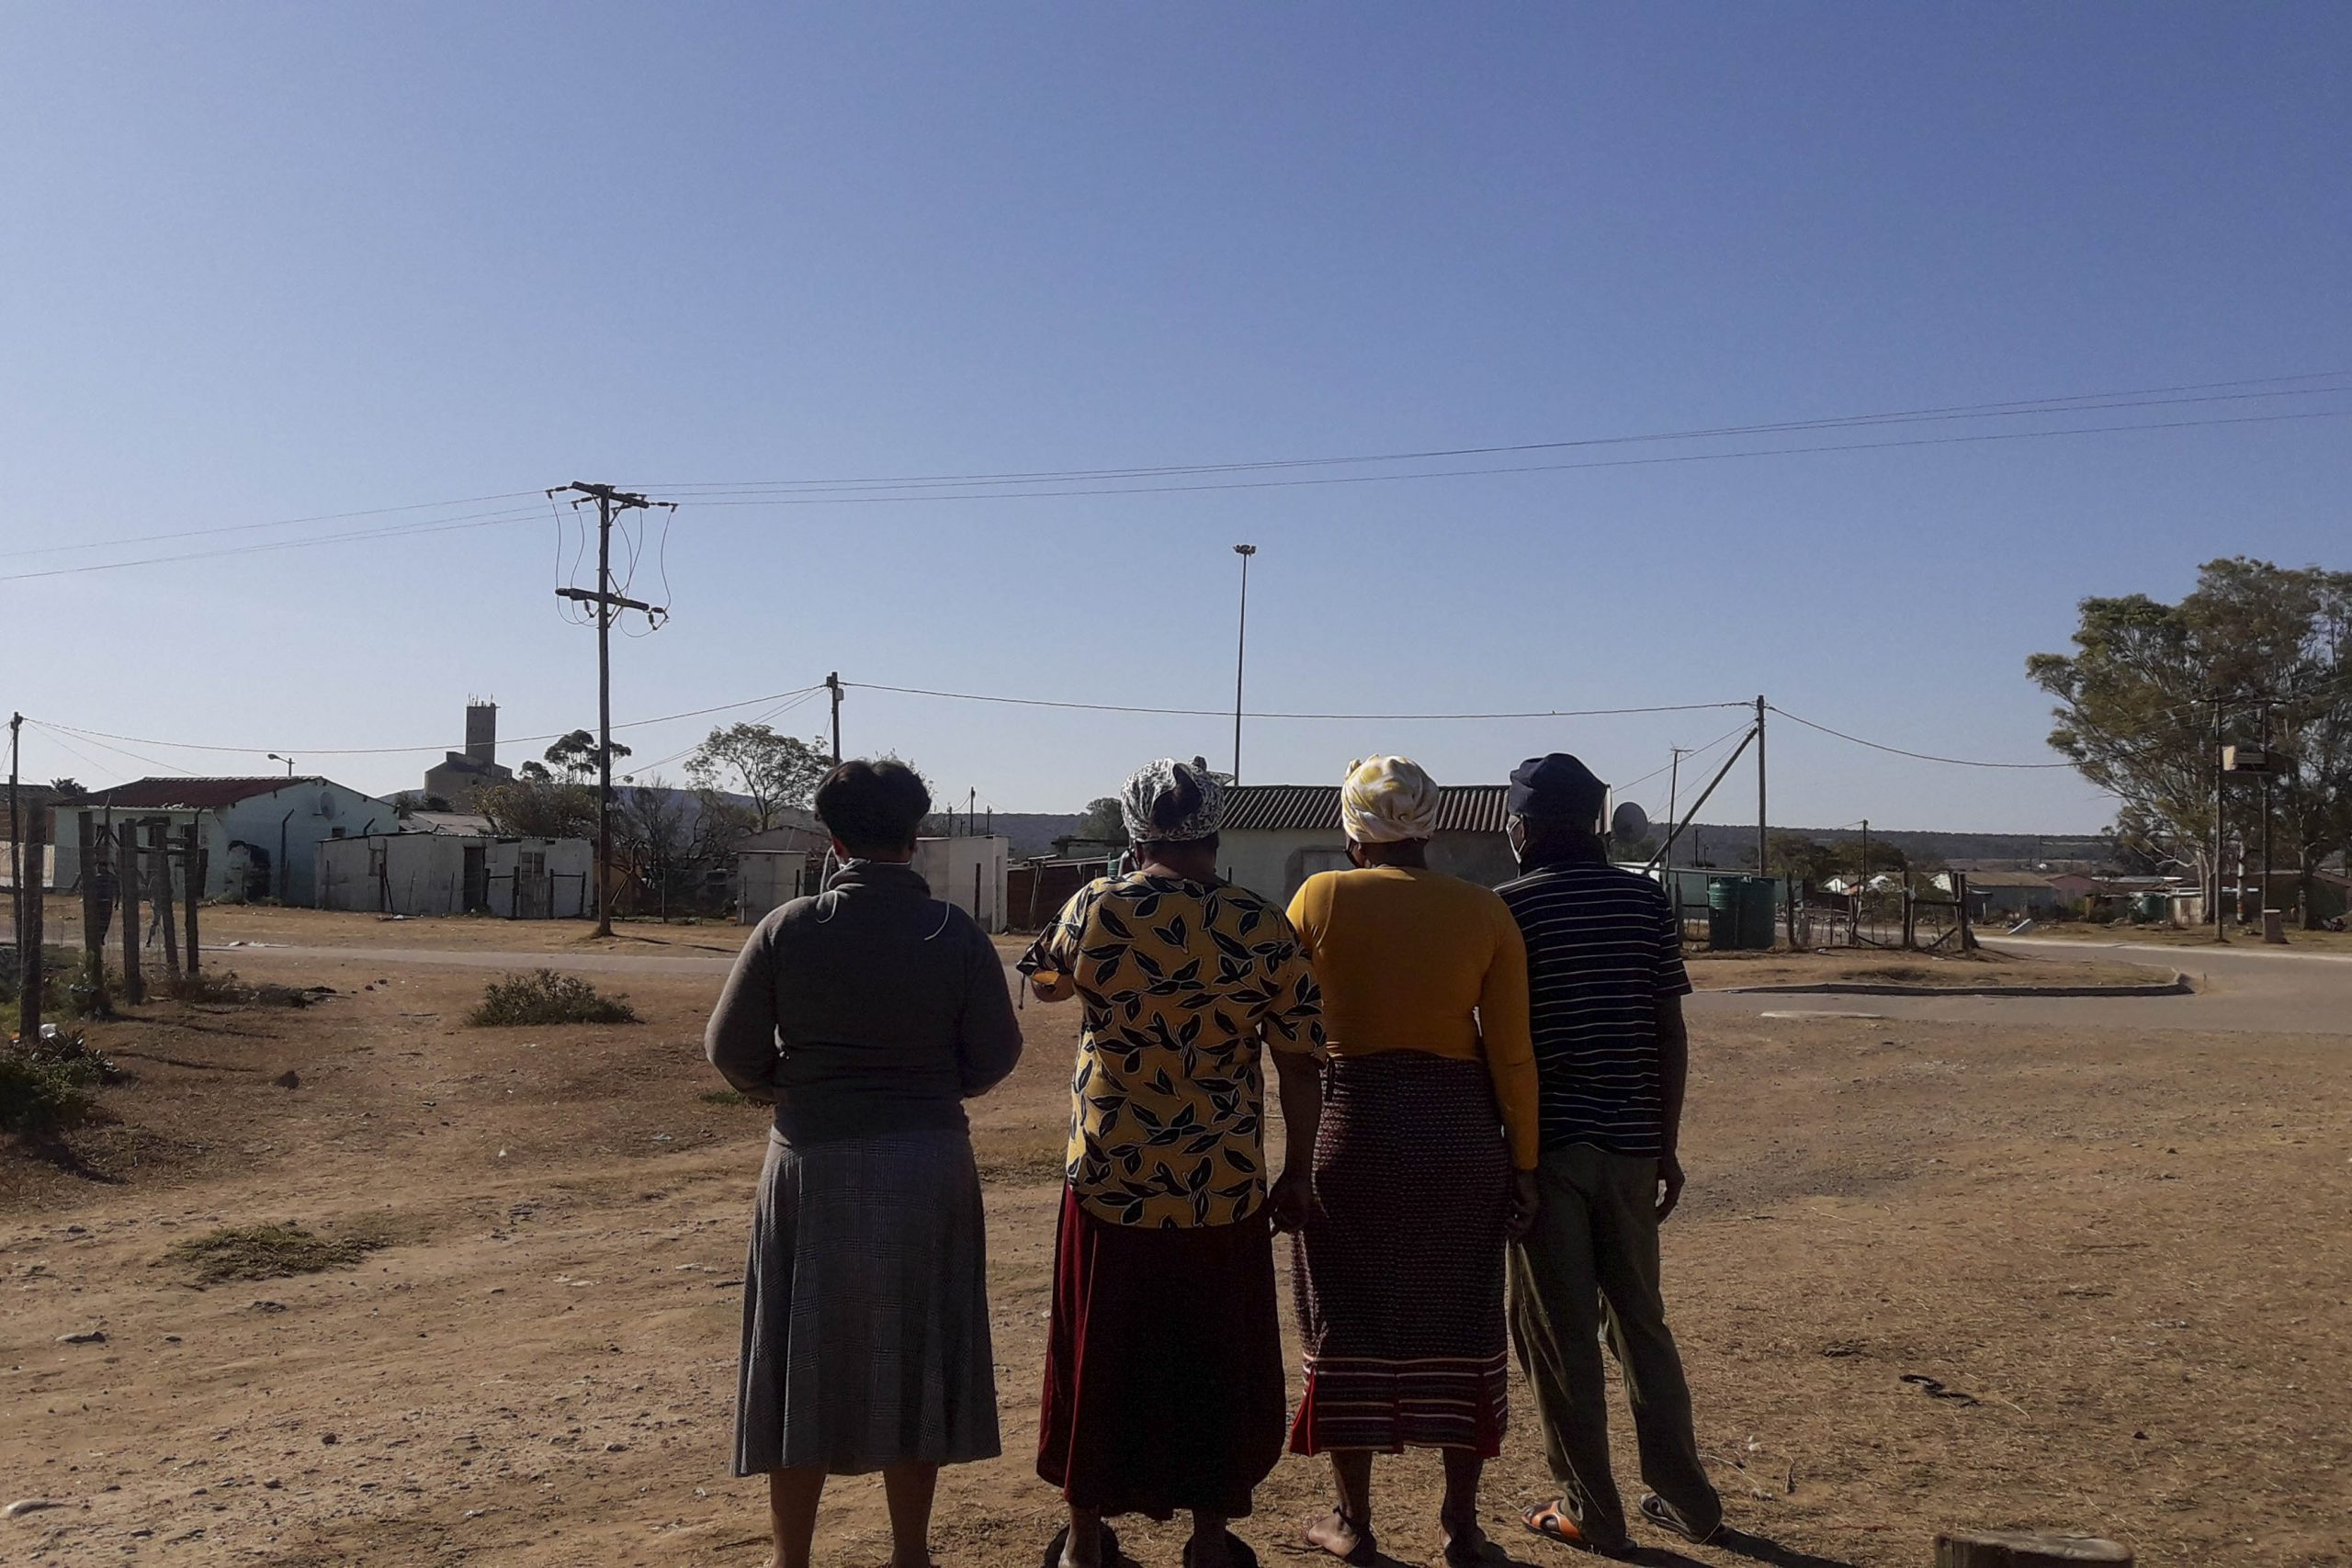 23 July 2020: These workers from the Schotia Safaris Private Game Reserve were all sent home at the beginning of lockdown and do not know when they will be called back to work.